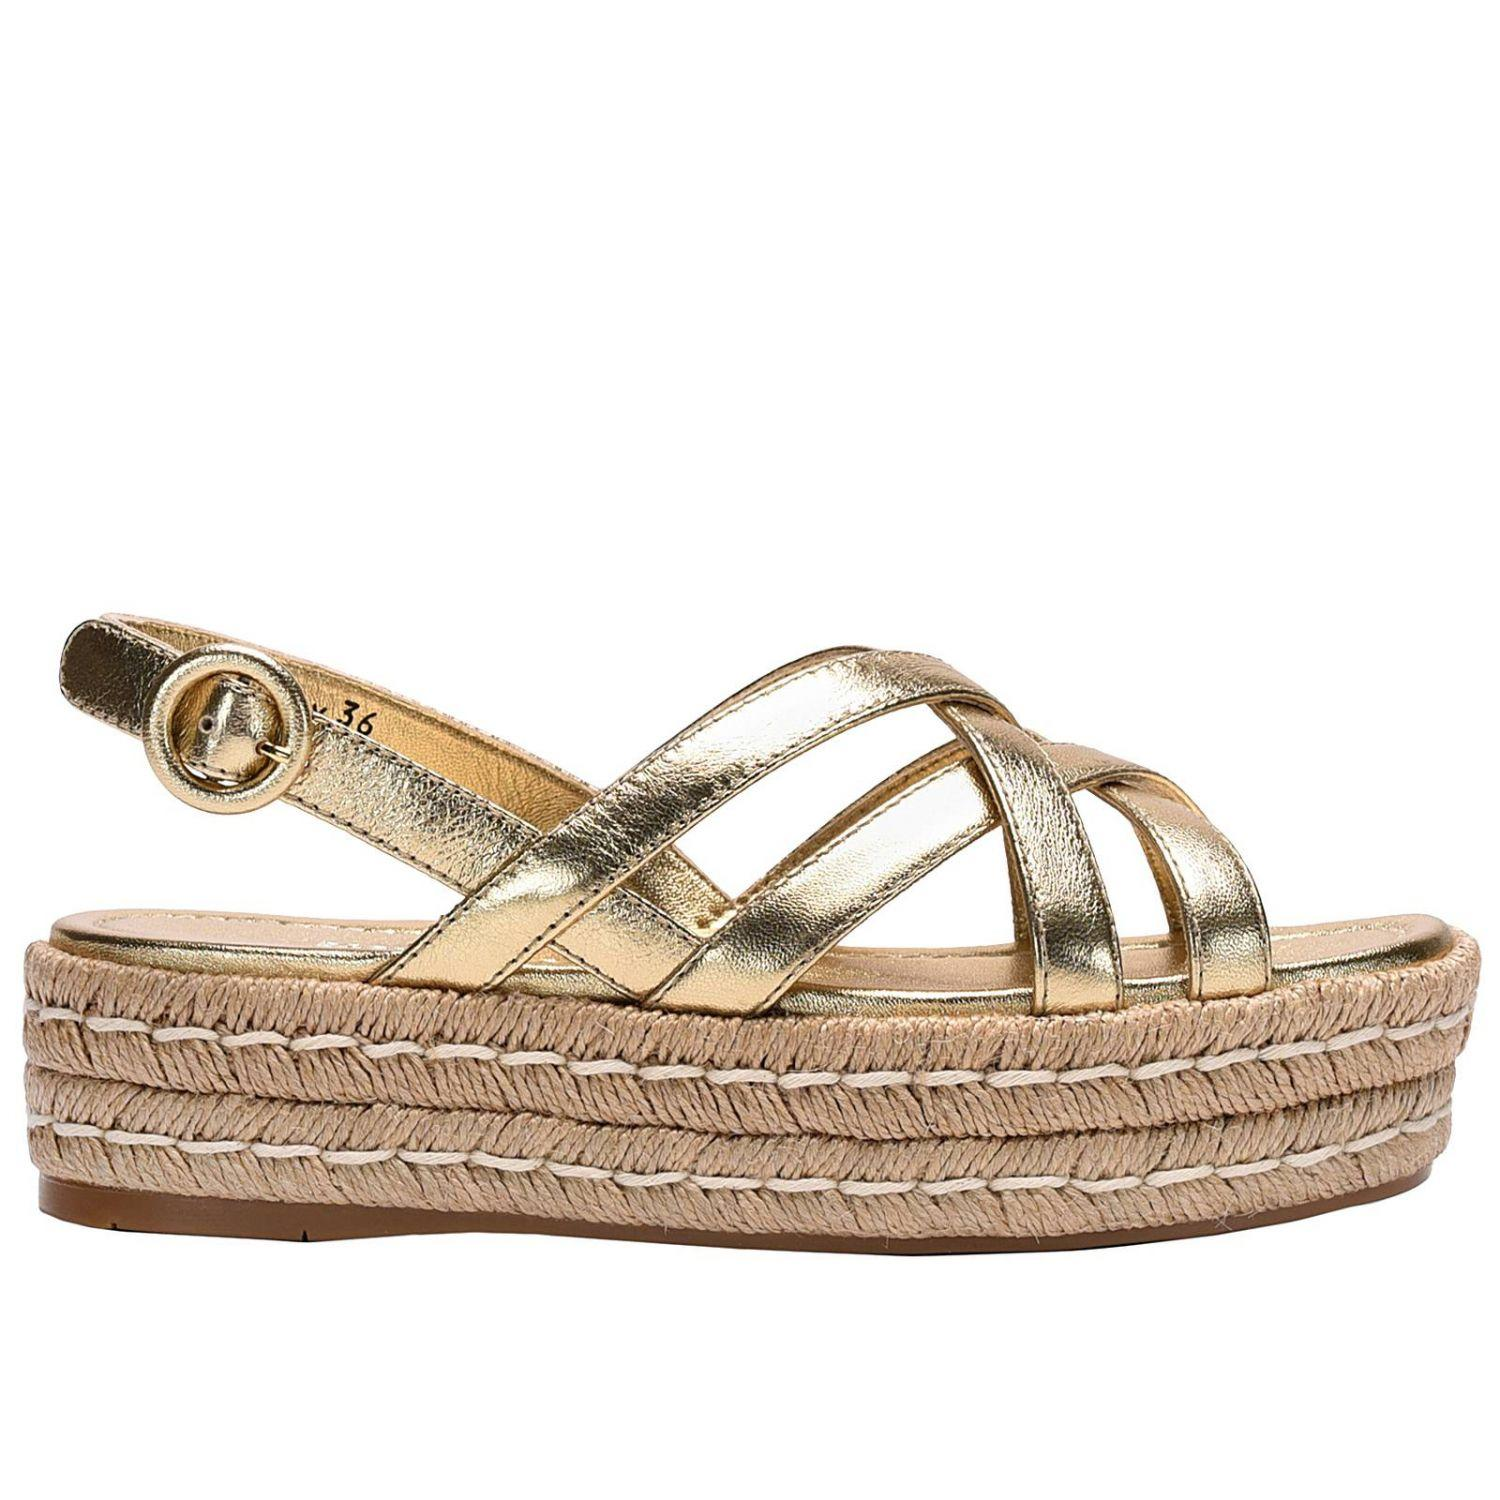 Model PRADA Shoes For Women Leather Coconut Wedge Sandals Yellow